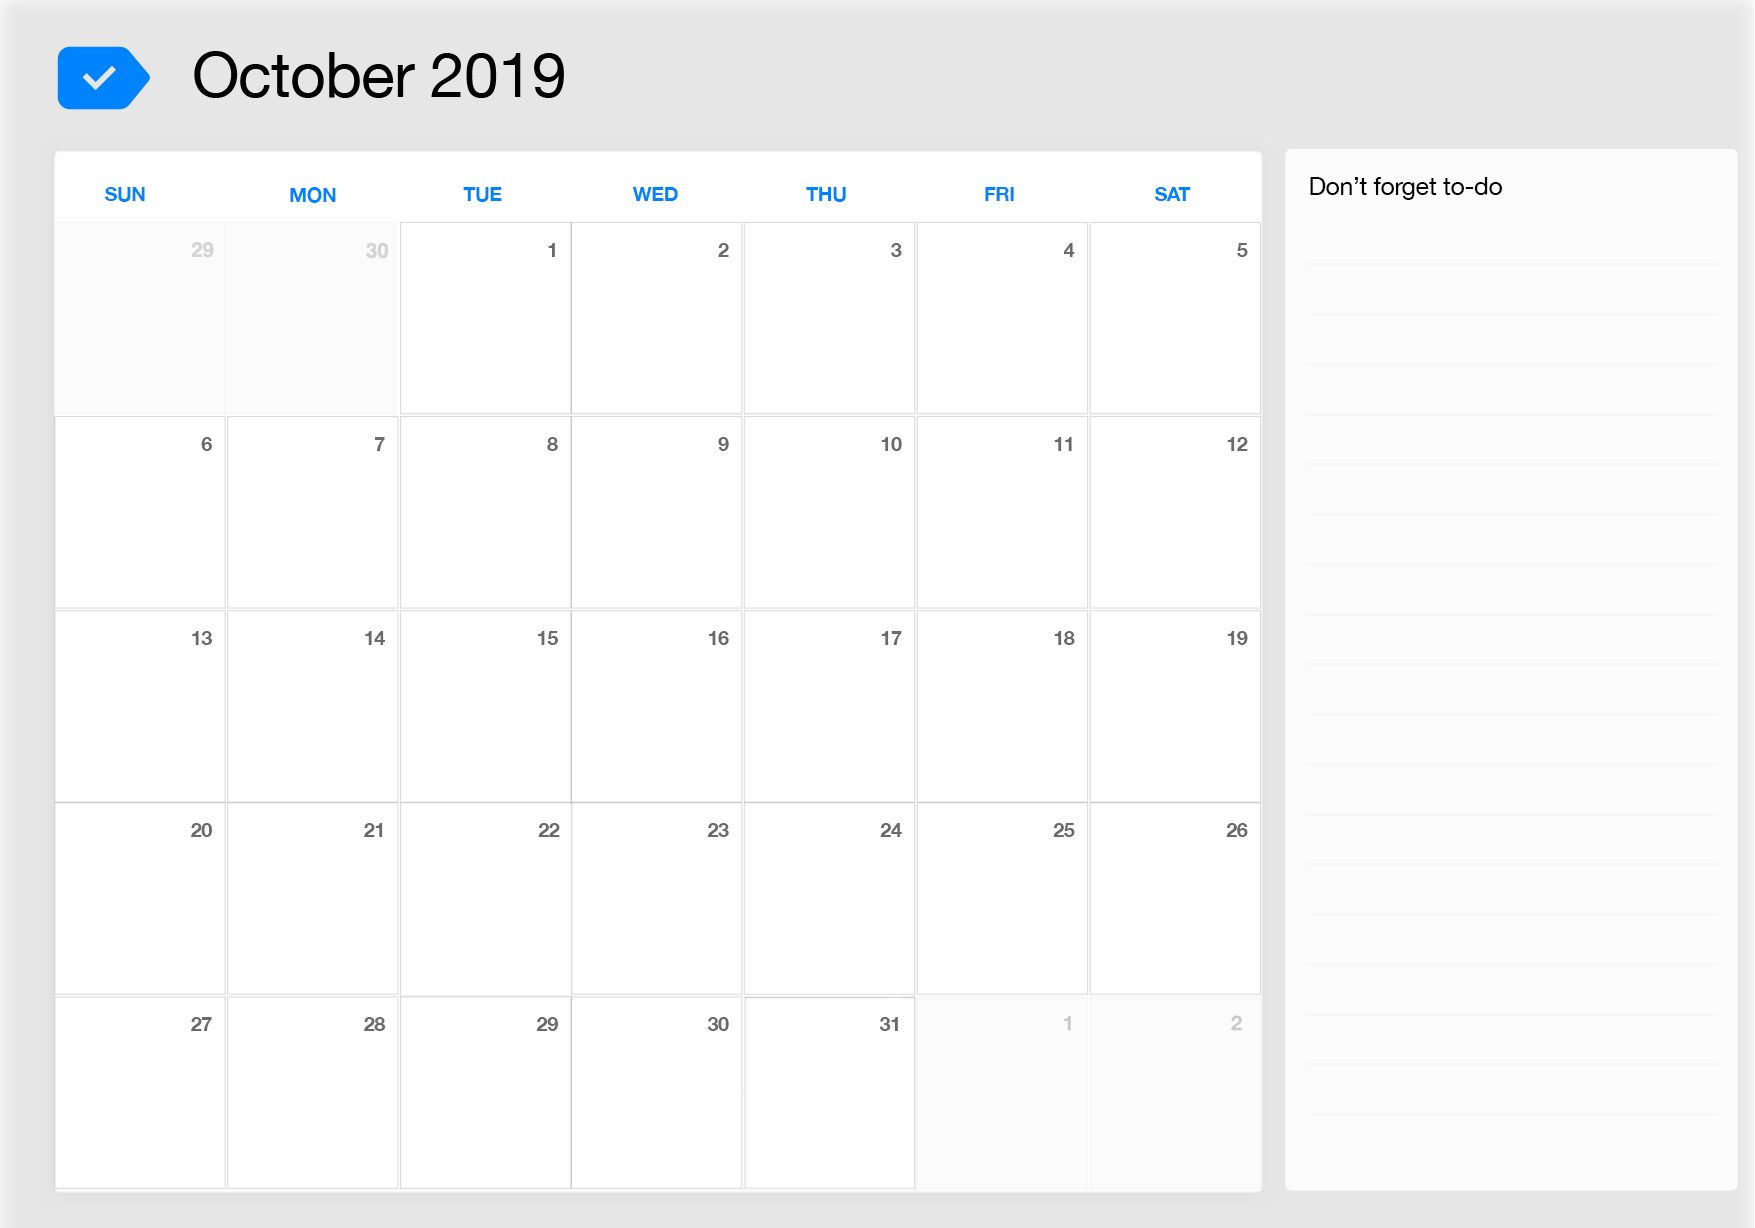 October 2019 free printable calendar to do list